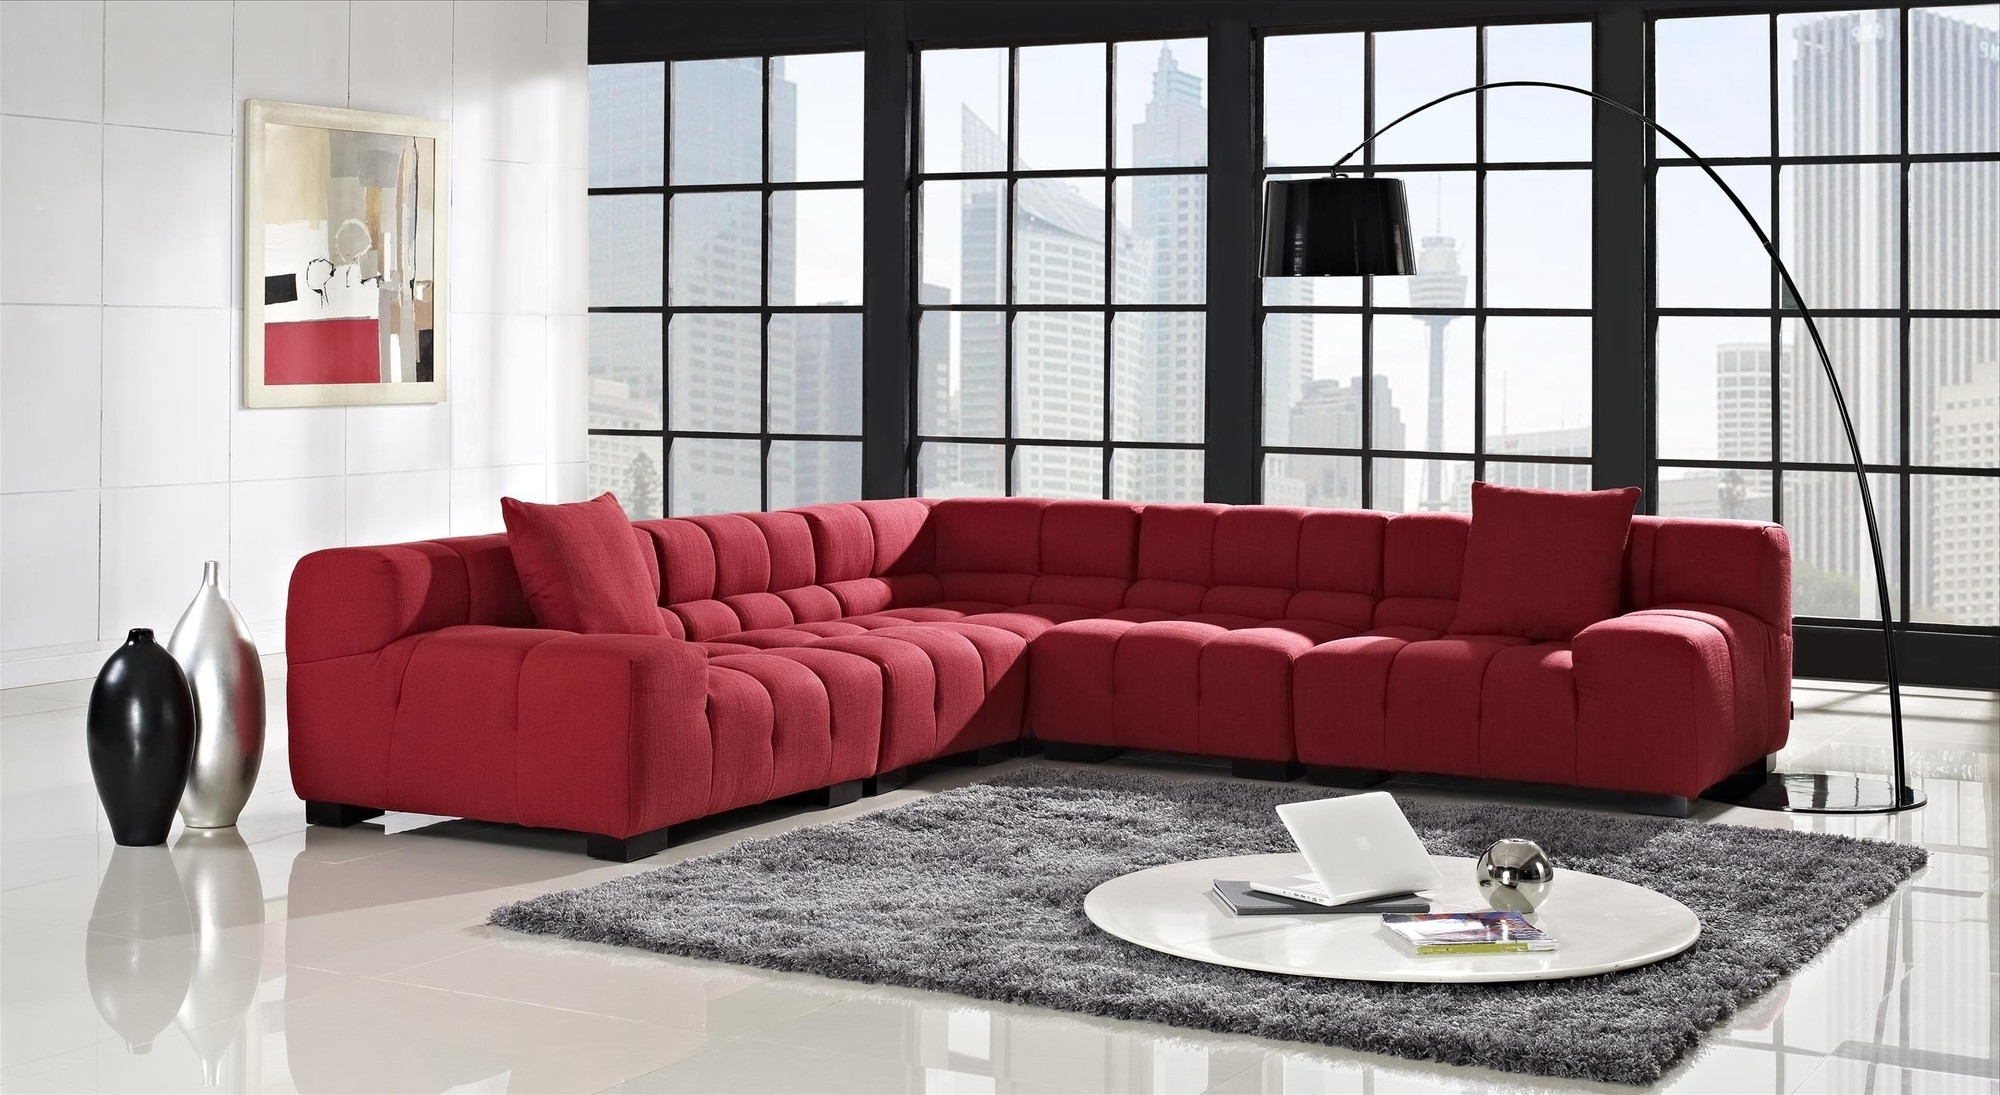 Beautiful Best Modern Sectional Sofa 18 On Sofas And Couches Ideas With 2018 Modern Sectional Sofas (View 2 of 15)